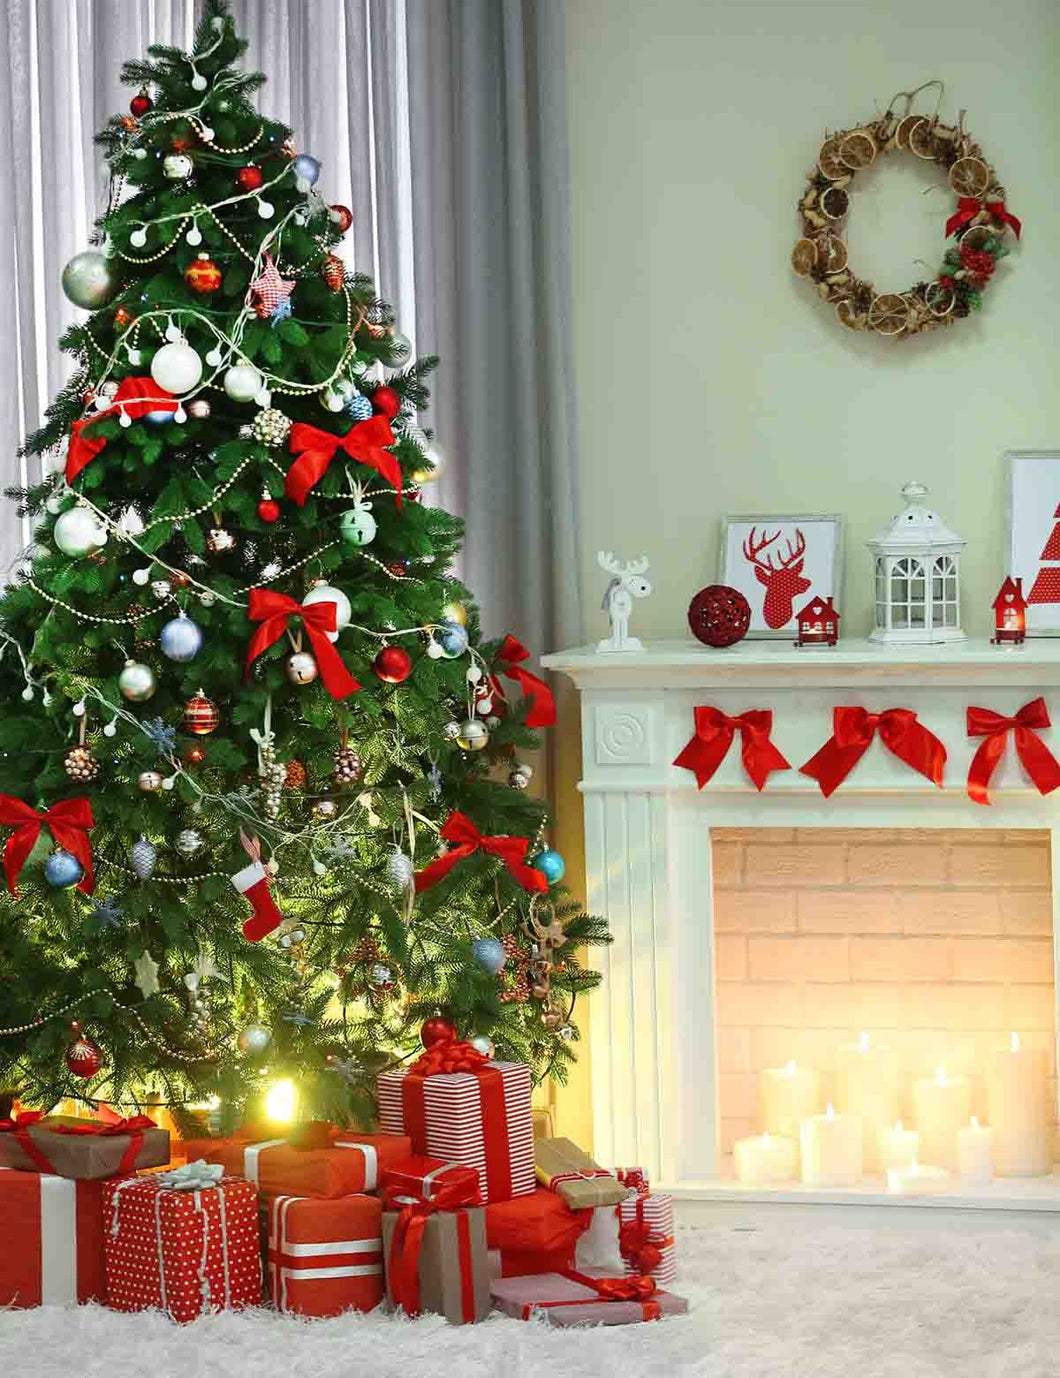 Christmas Tree Full Of Gifts With Wool Carpet Backdrop For Holiday Photo - Shop Backdrop